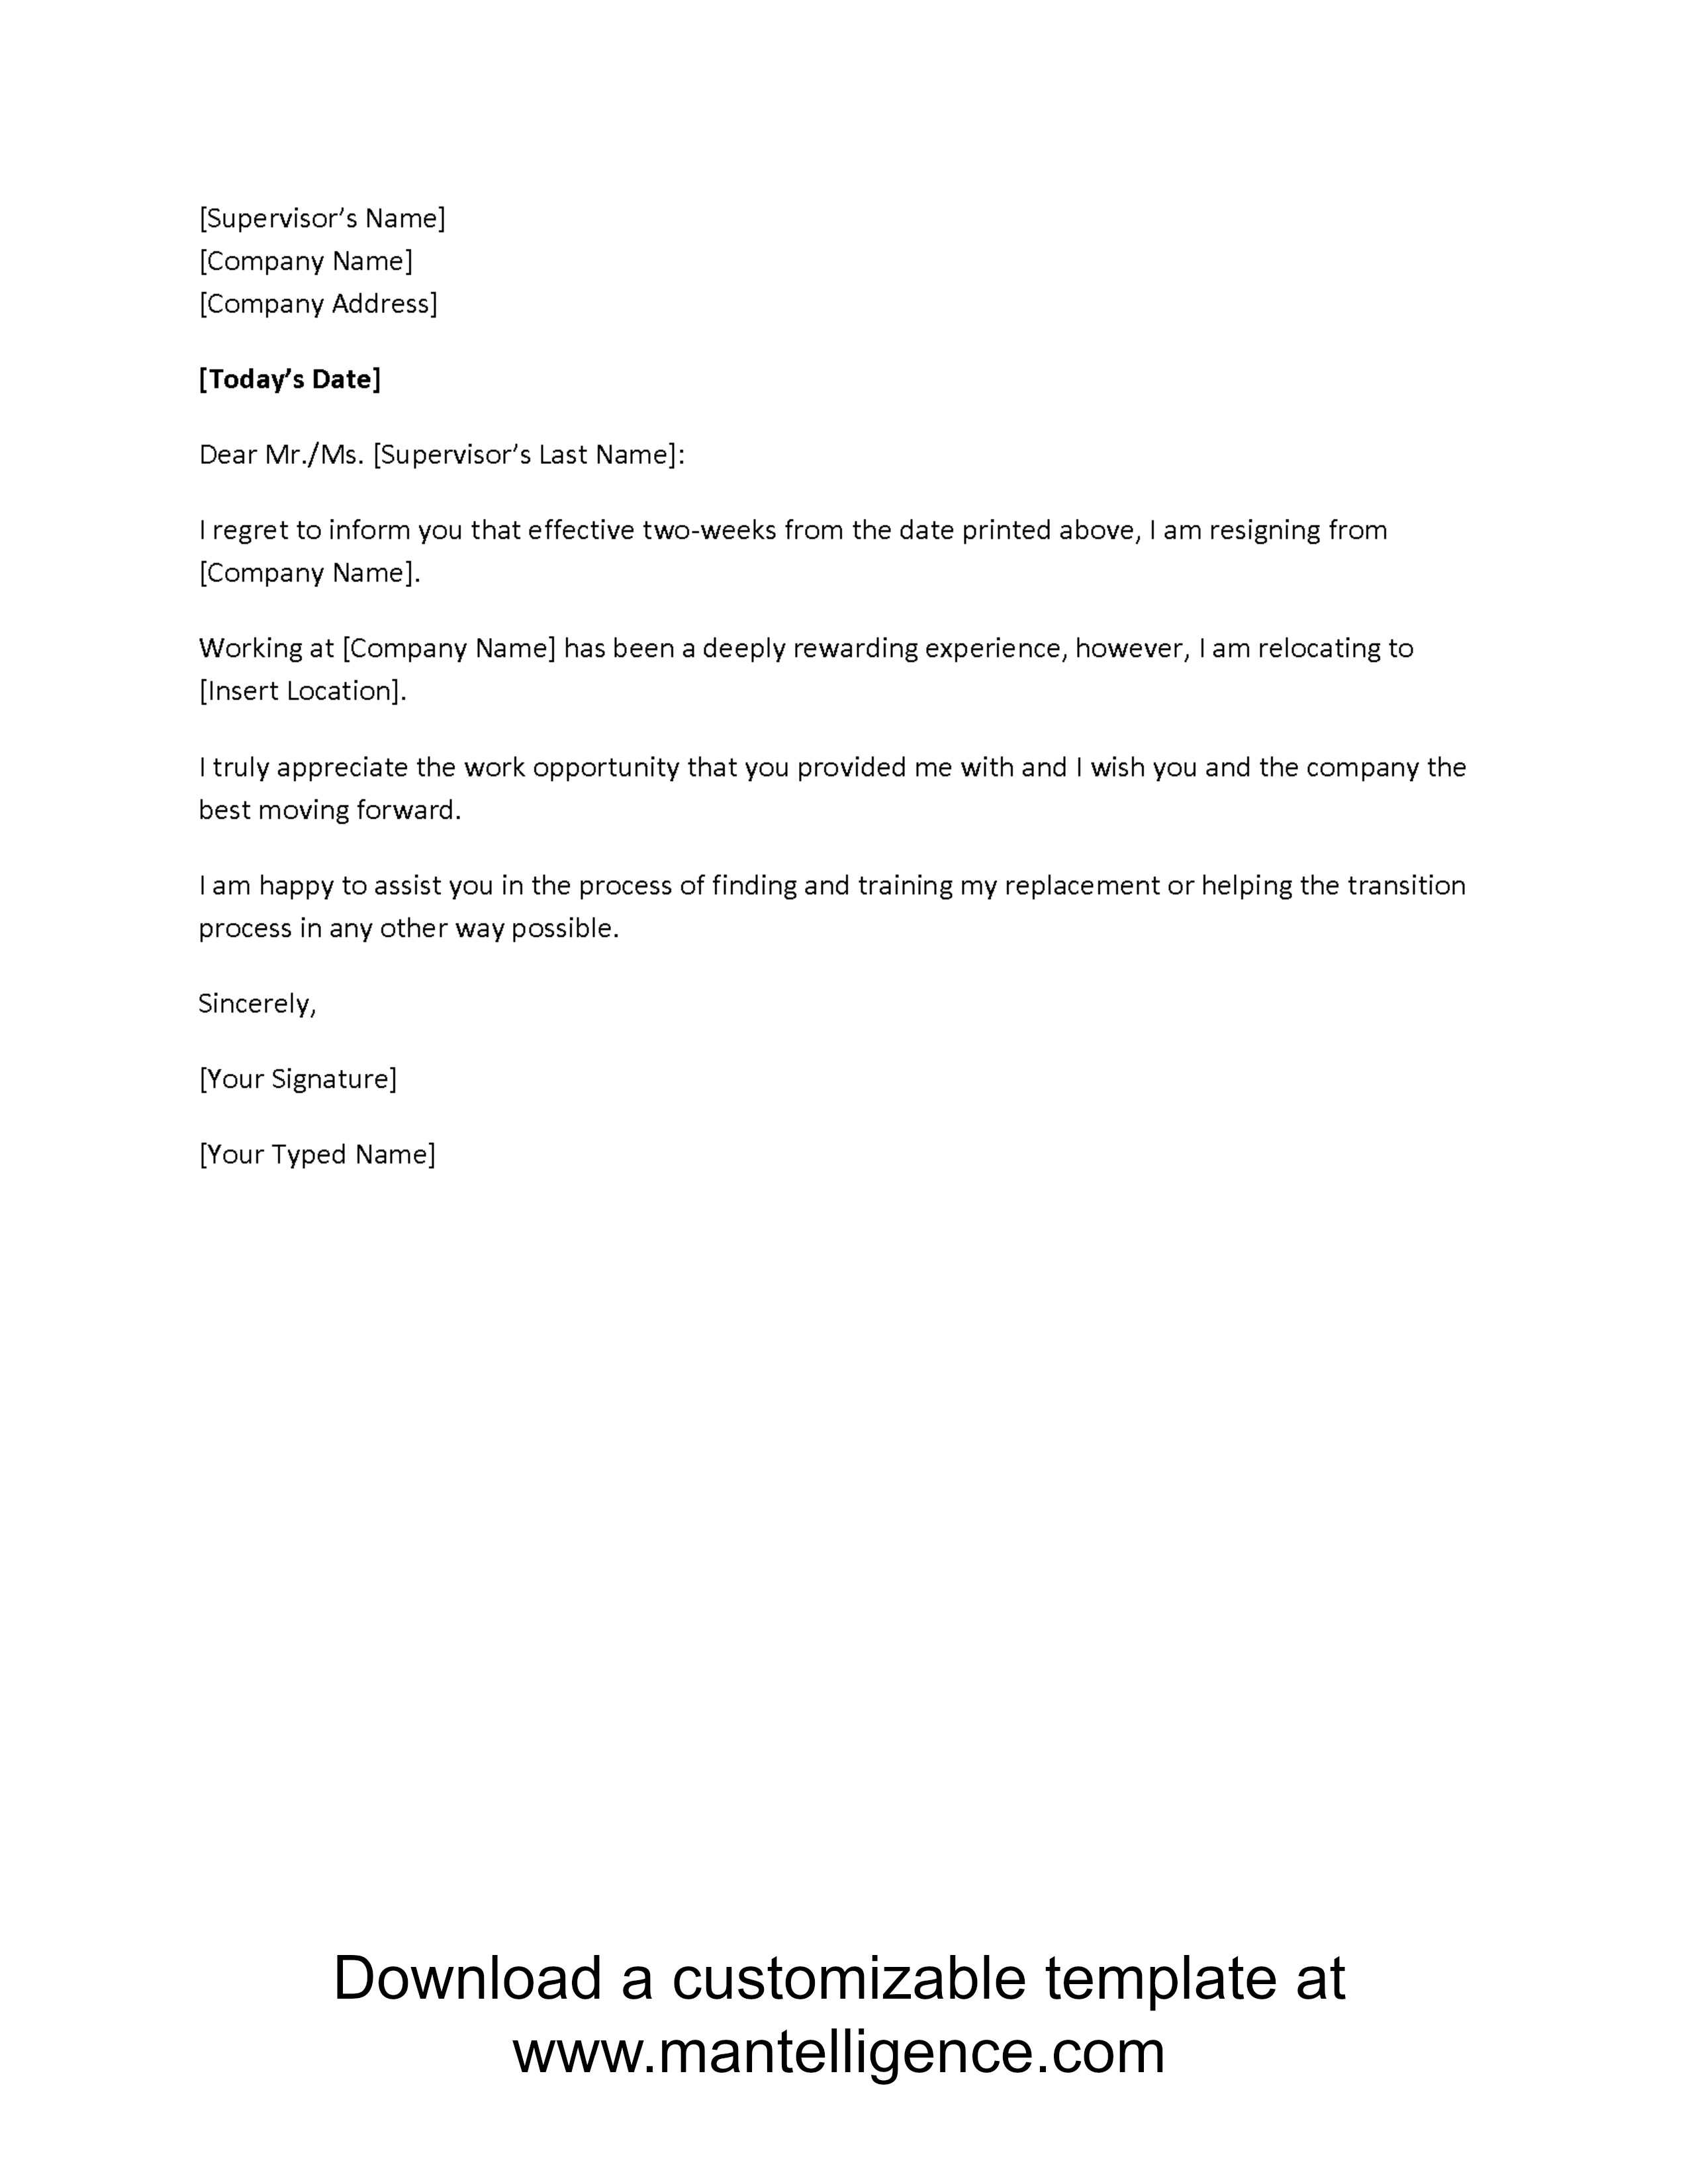 Tenancy Notice Letter Template - 3 Highly Professional Two Weeks Notice Letter Templates